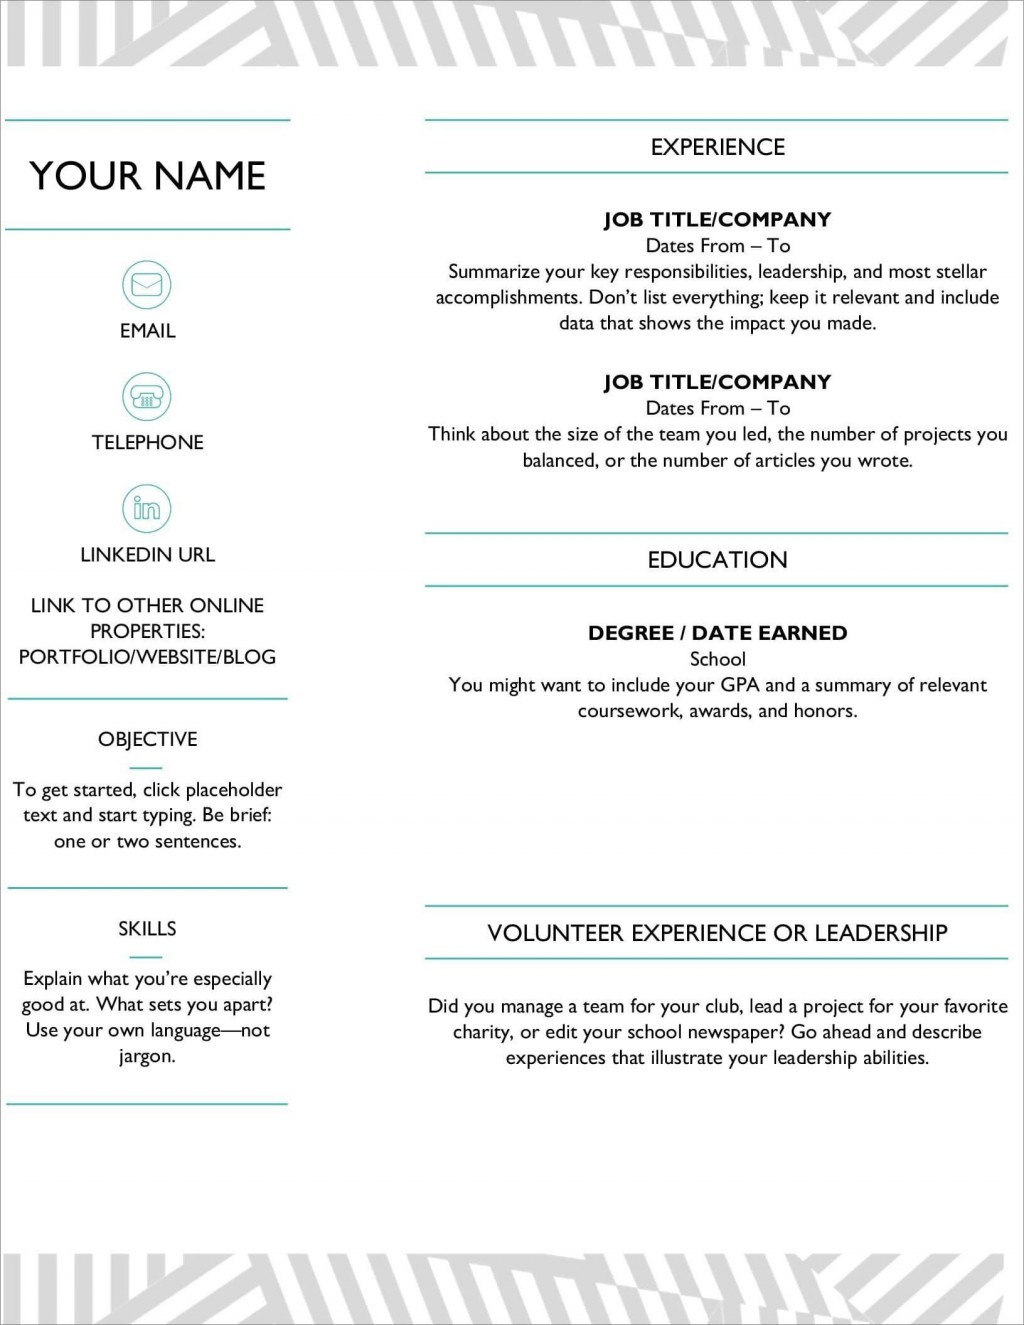 009 Beautiful Microsoft Word Template Download Example  2010 Resume Free 2007 Error InvoiceLarge